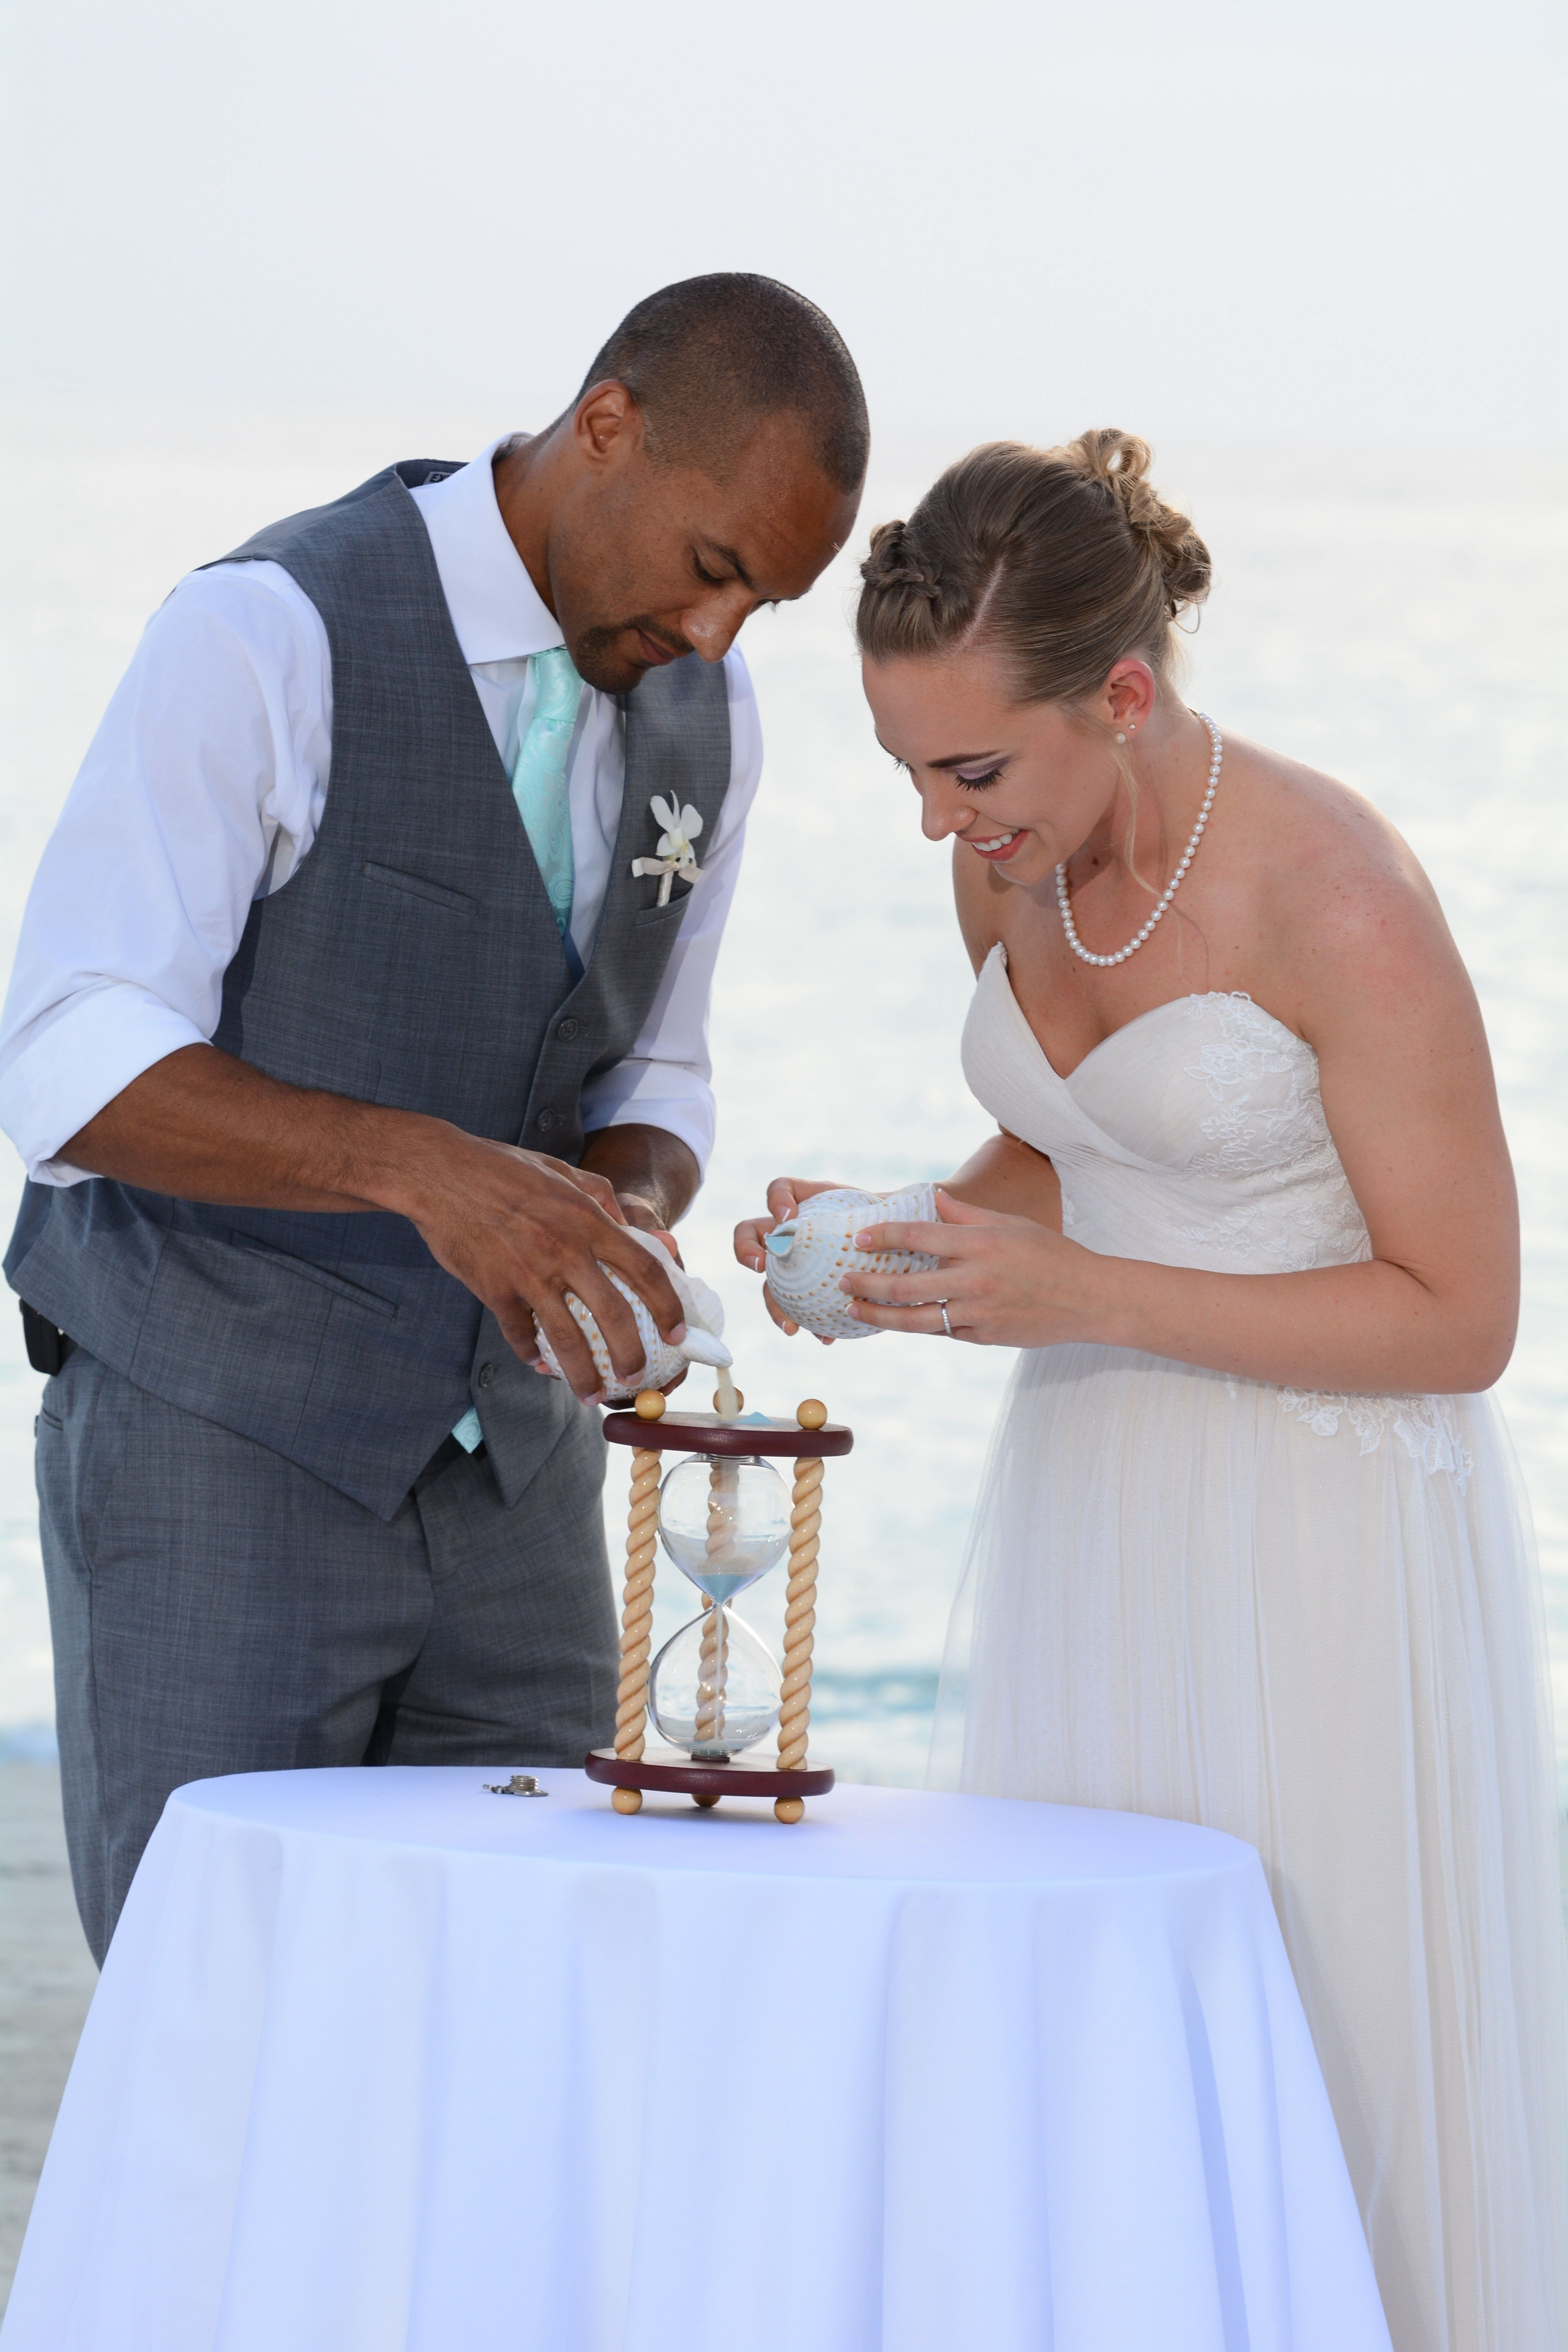 wedding sand vase of love this picture of an hourglass sand ceremony wedding with regard to love this picture of an hourglass sand ceremony